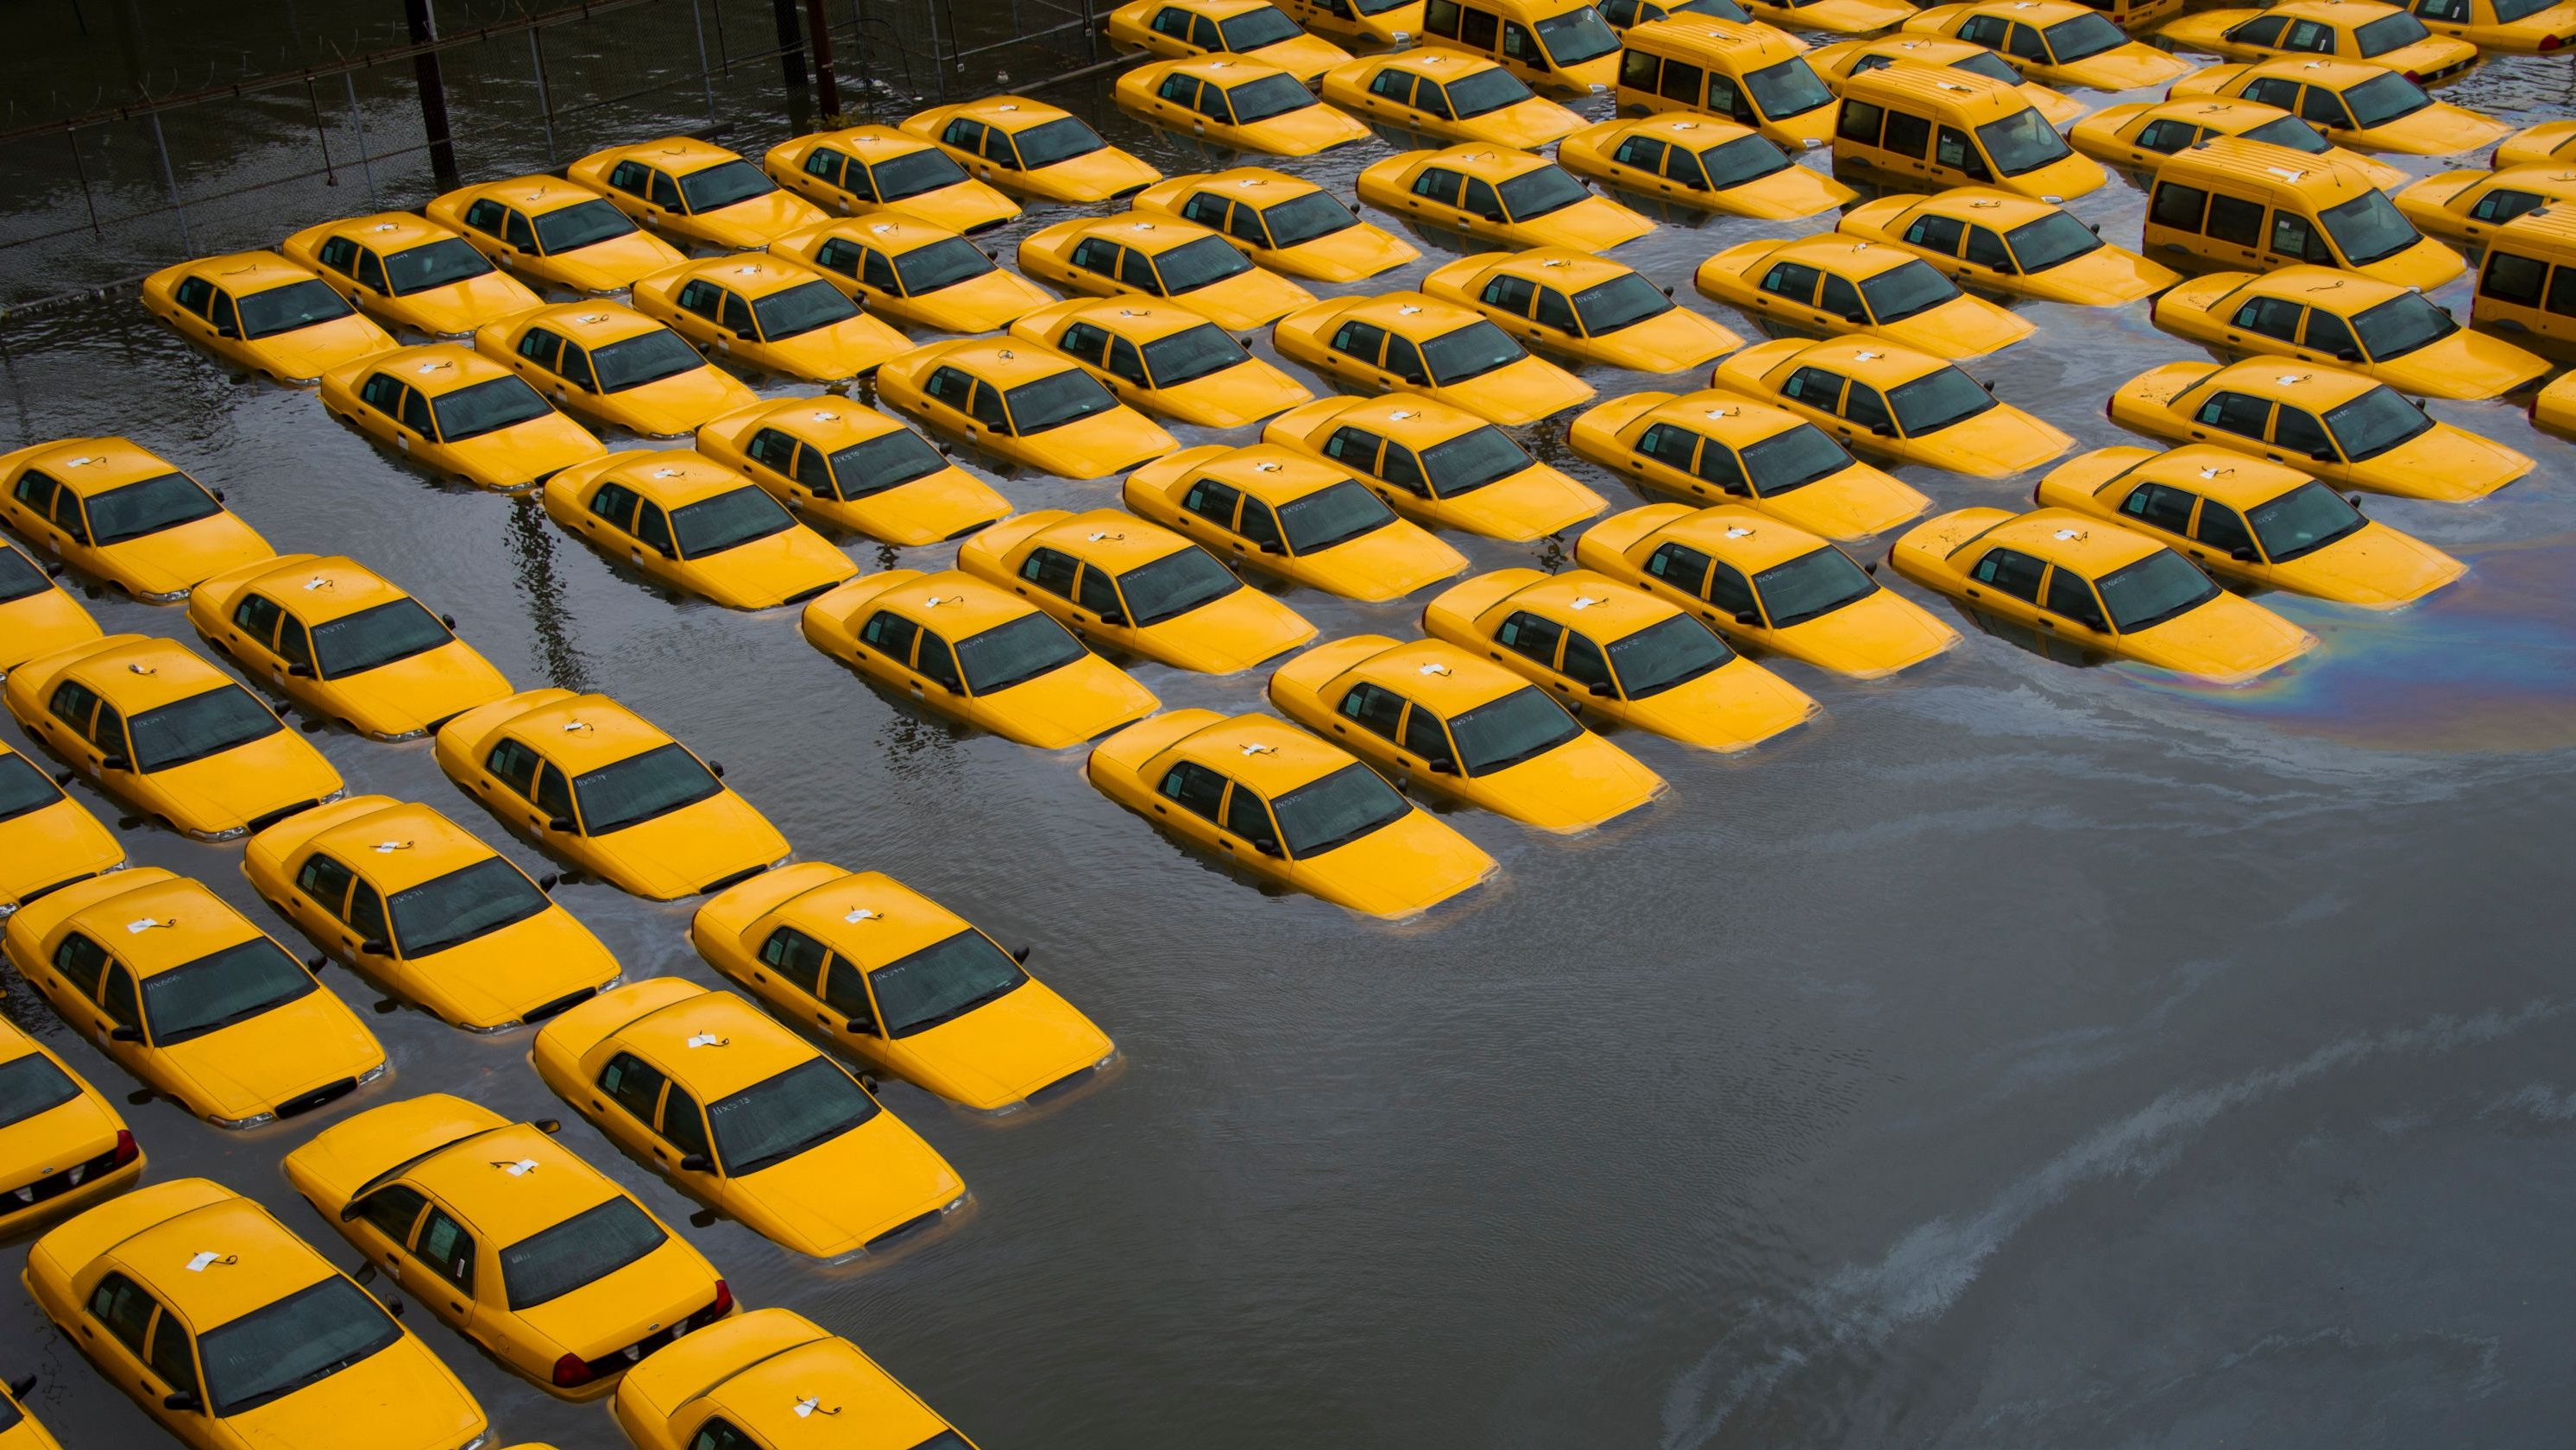 A flooded parking lot full of taxis.